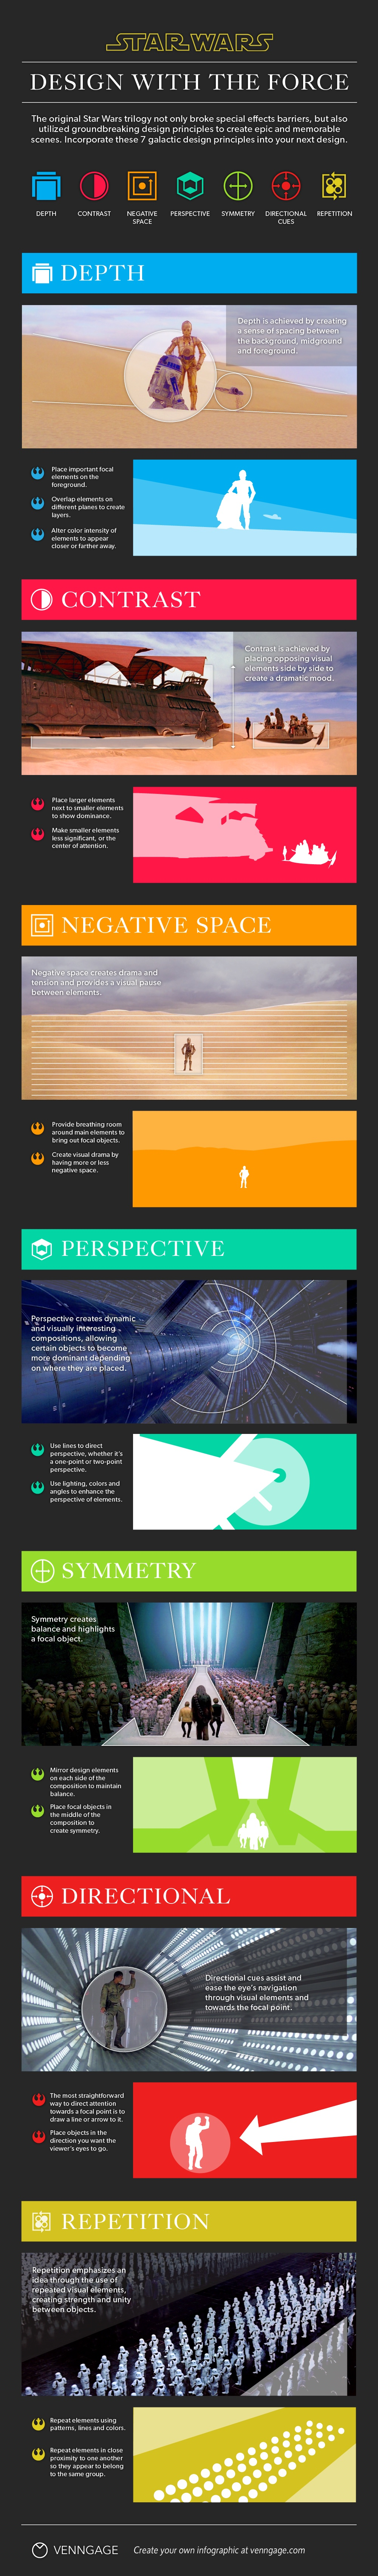 Infographic: Design With The Force | Venngage